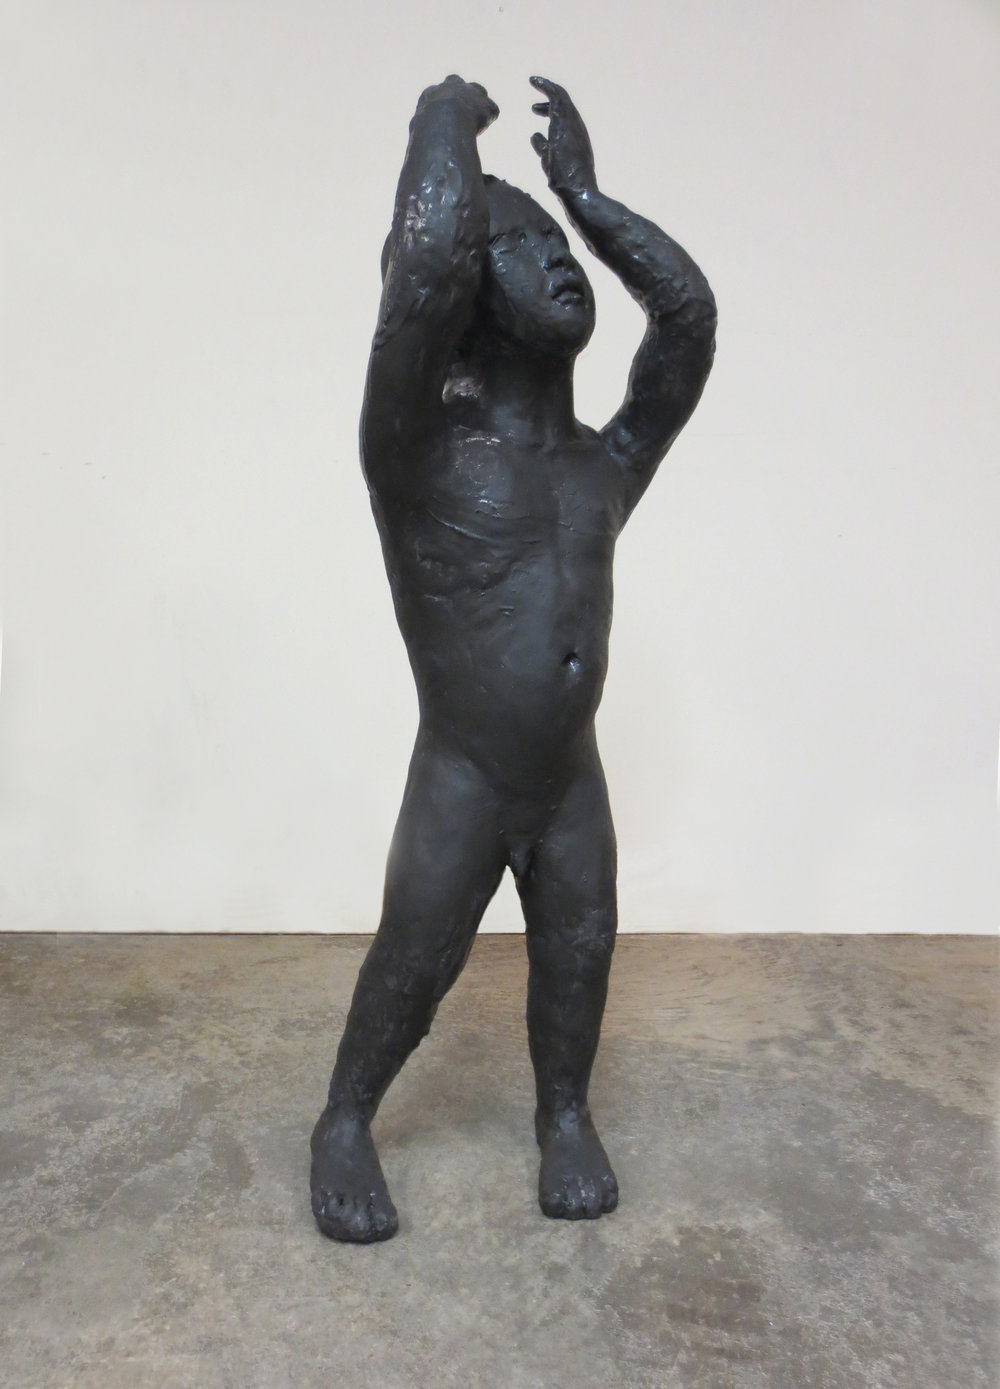 Orator 3, 2014, Stoneware, 43 x 15 x 11 in. Northern Clay Center, Minneapolis, Minnesota